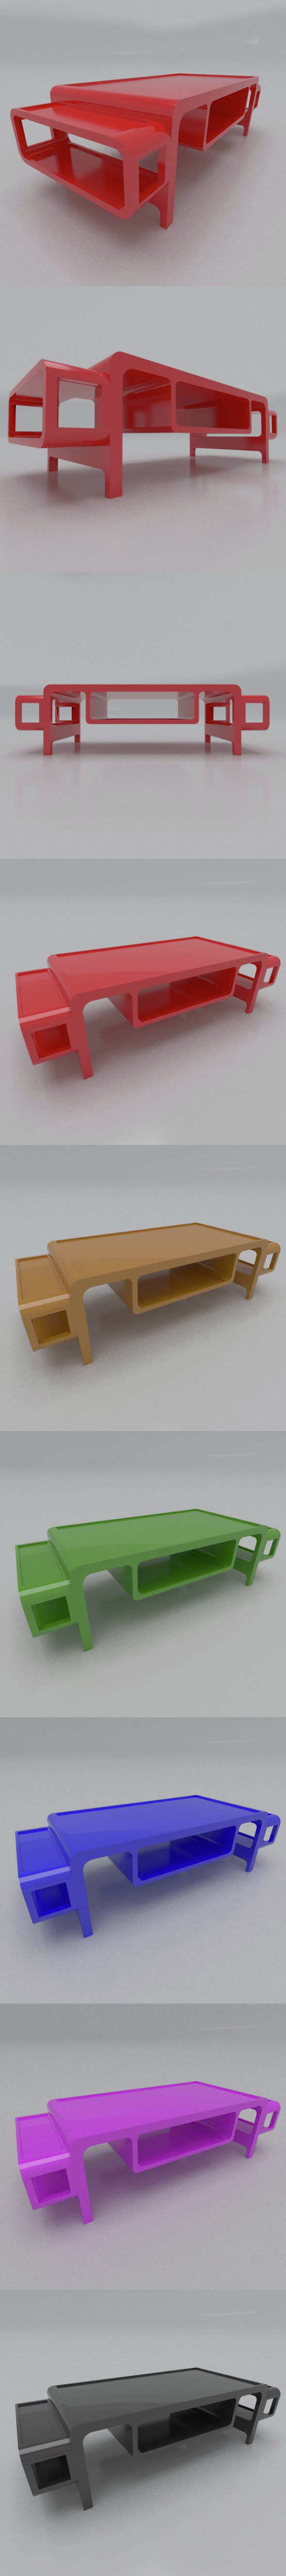 Modern low TABLE - 3DOcean Item for Sale